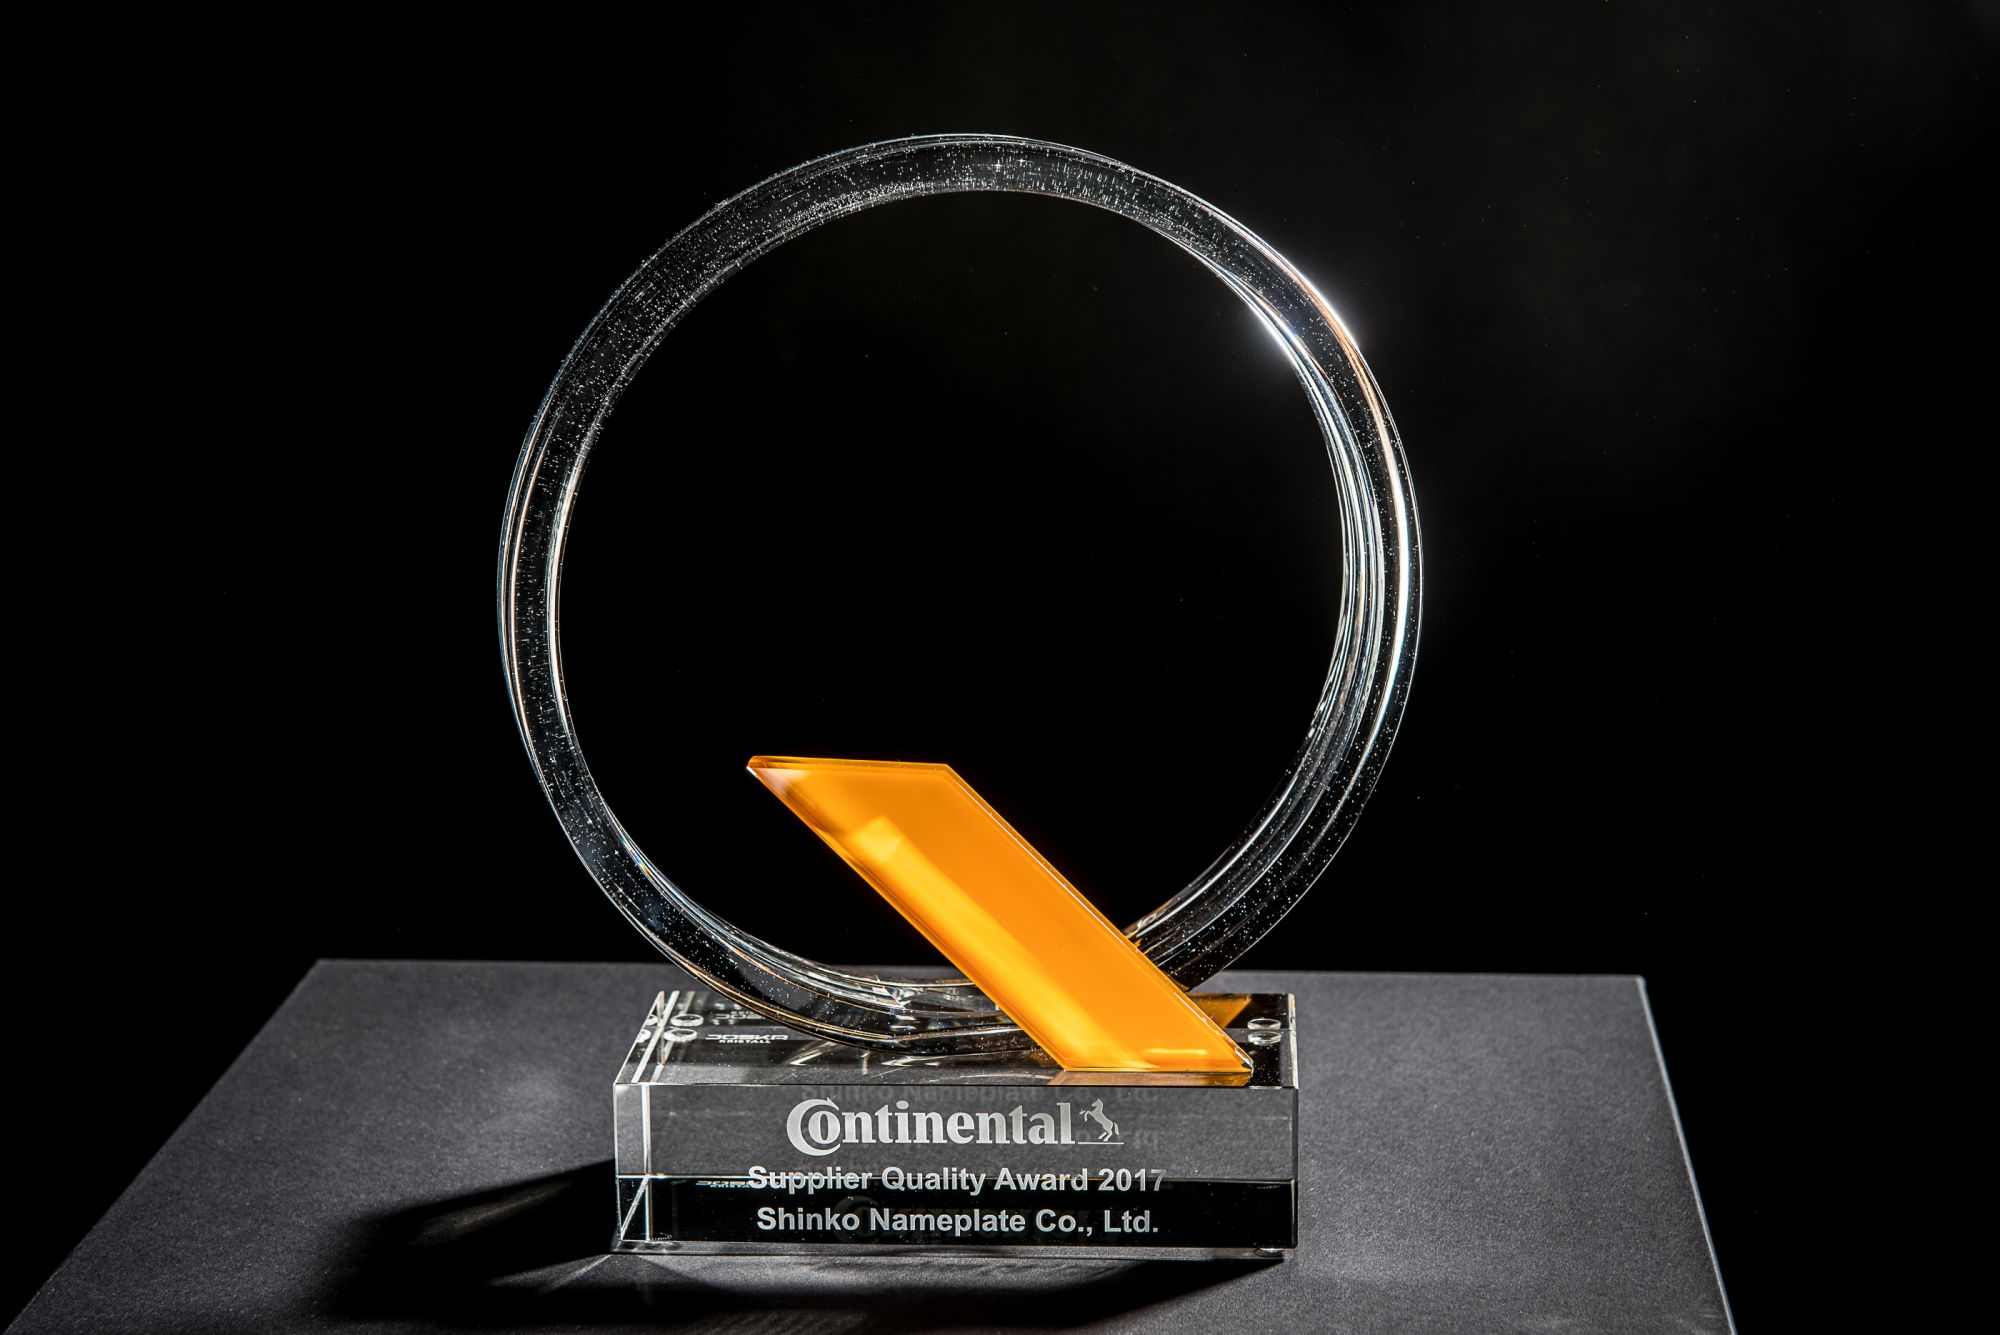 Continental Quality Award 2017